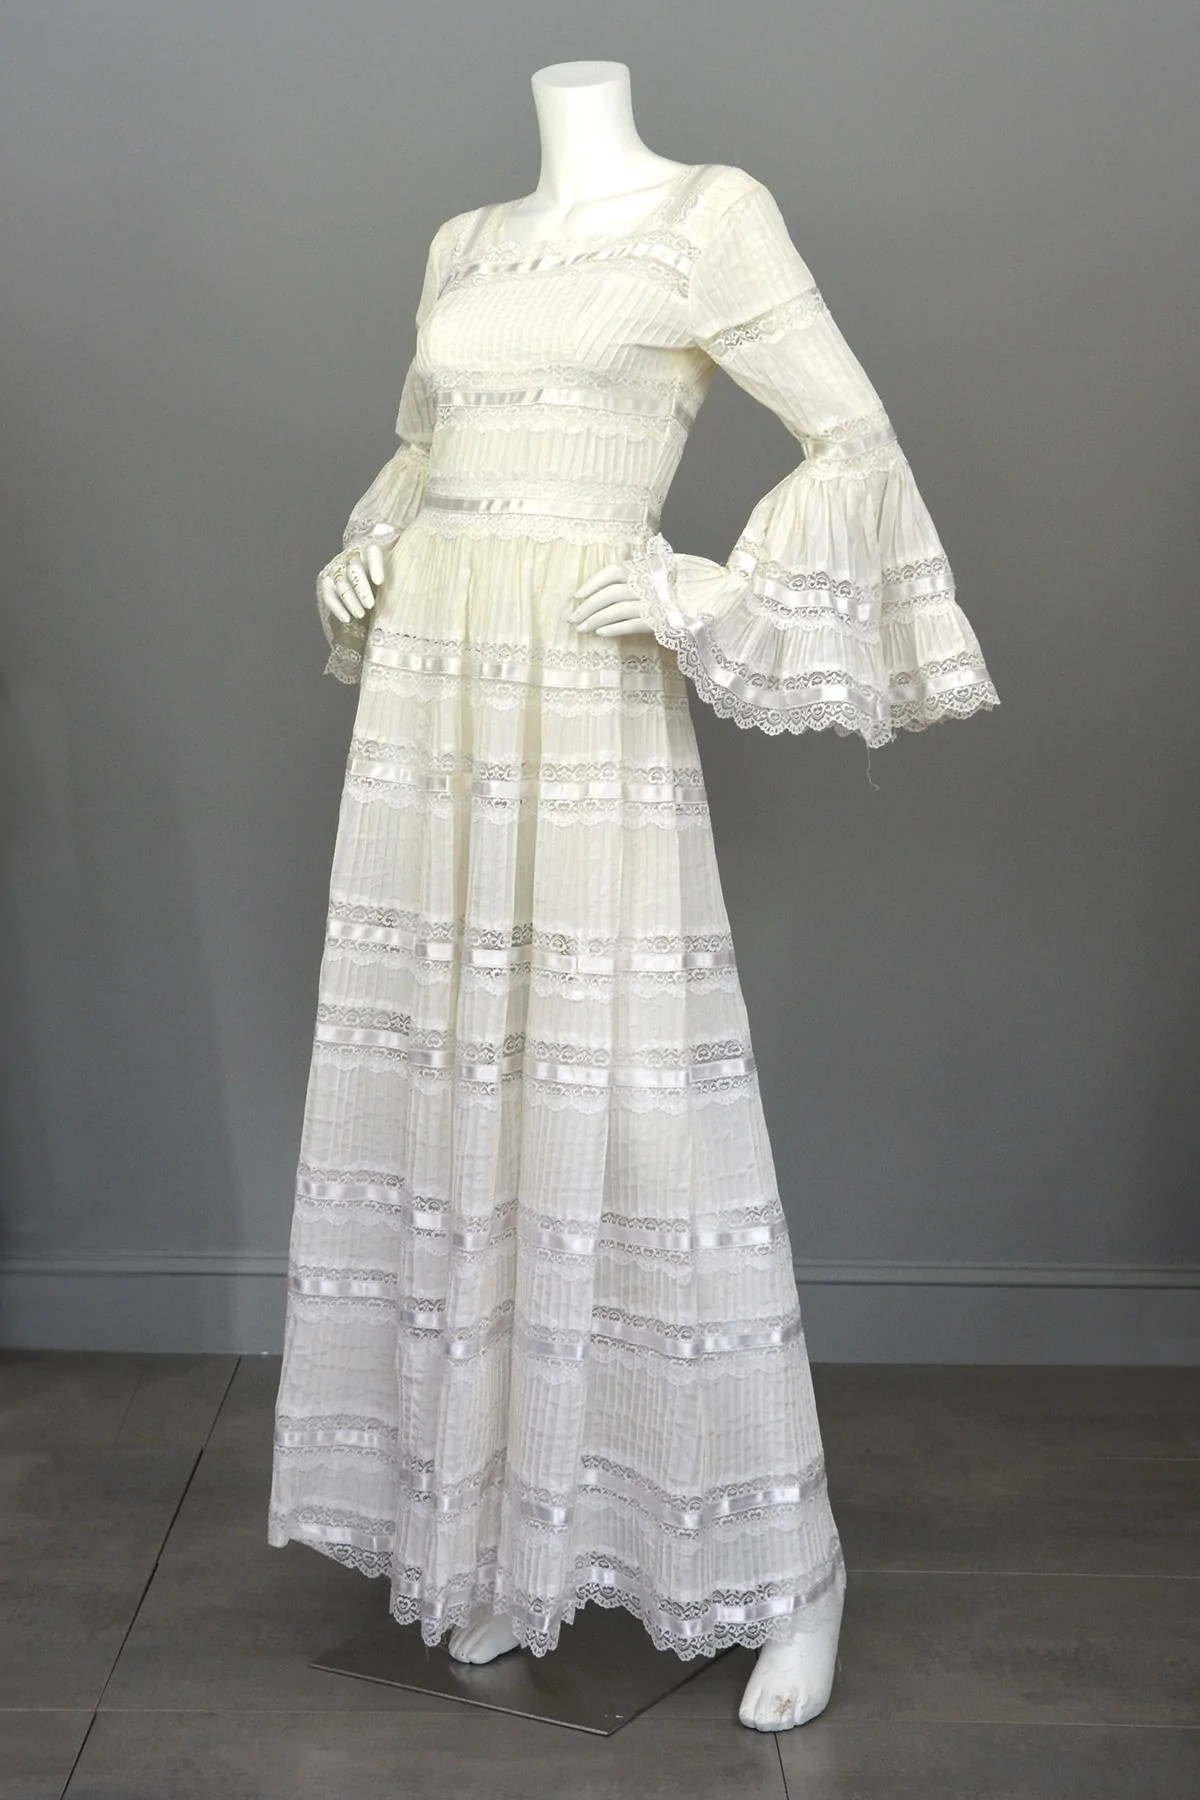 1970s Vintage Mexican Wedding Dress with Bell Sleeves and Lace  VintageVirtuosa